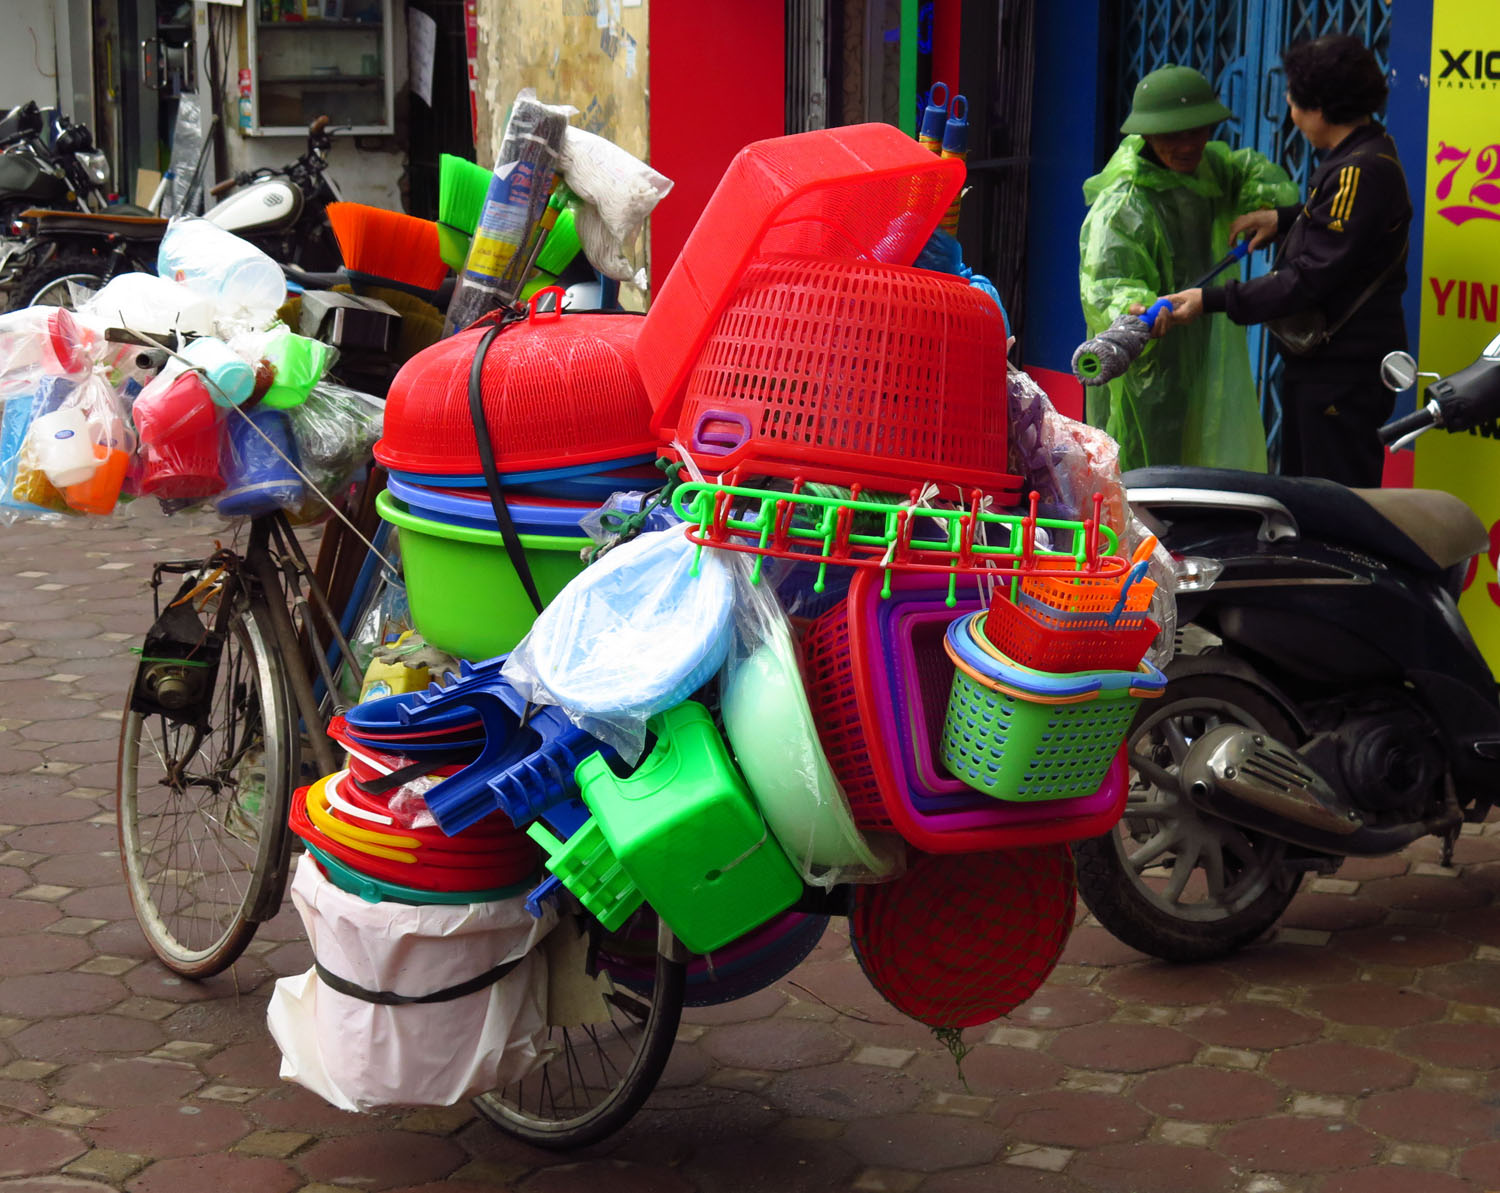 Vietnam-Hanoi-Street-Scenes-Merchant-On-Bicycle